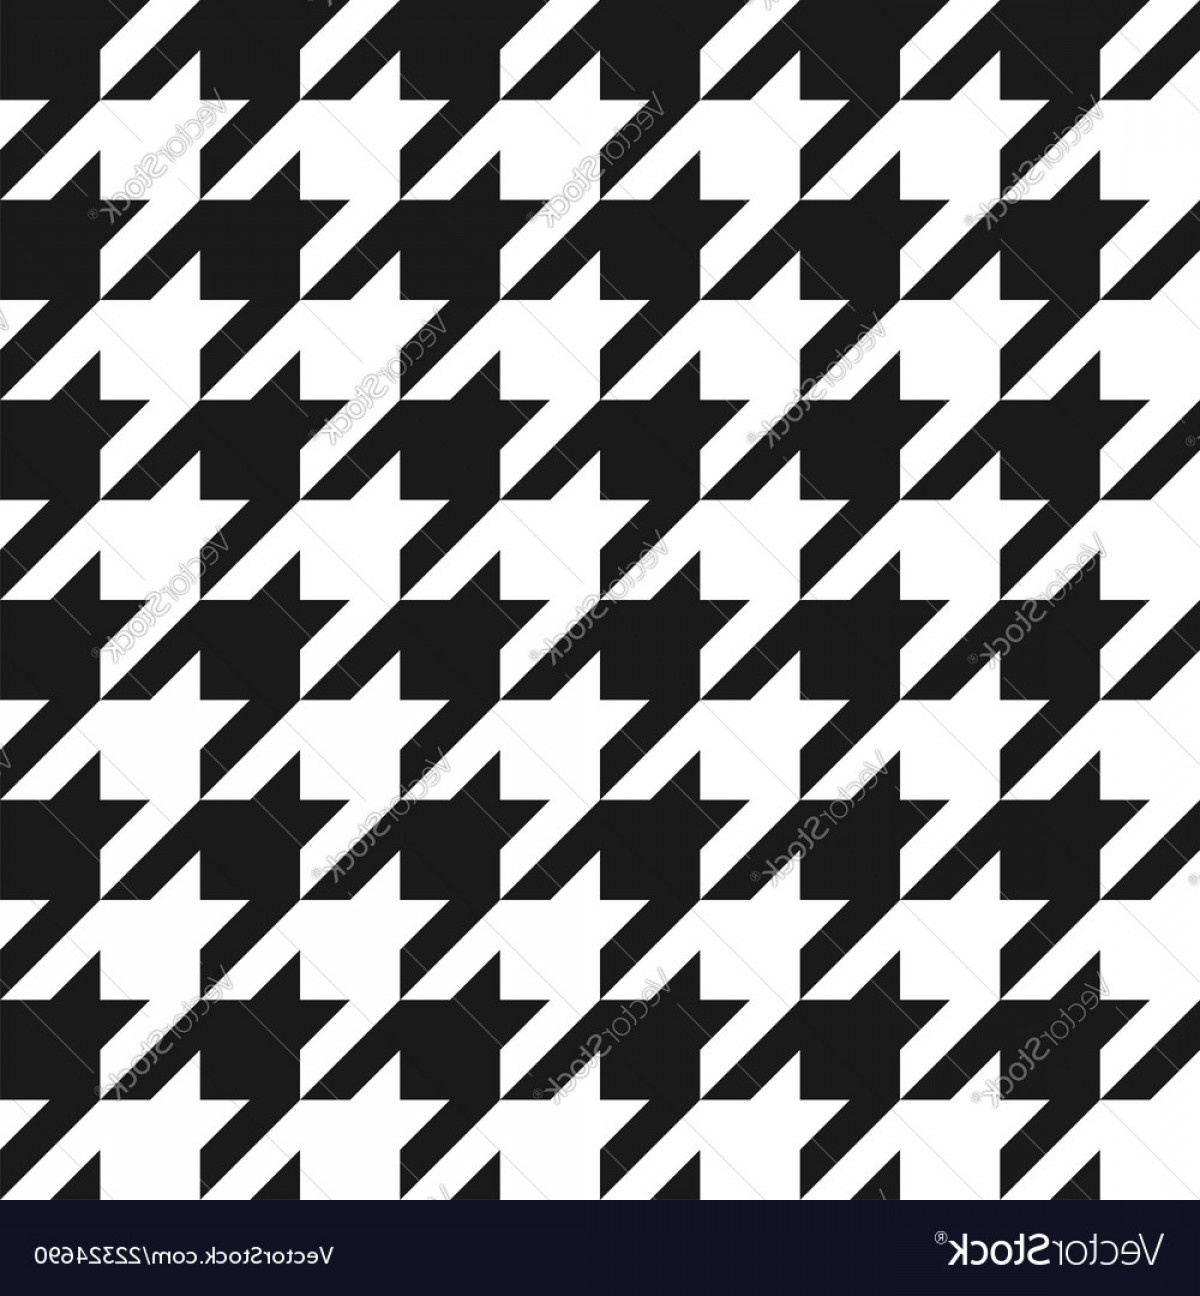 Houndstooth Vector: Houndstooth Seamless Pattern Vintage Houndstooth Vector